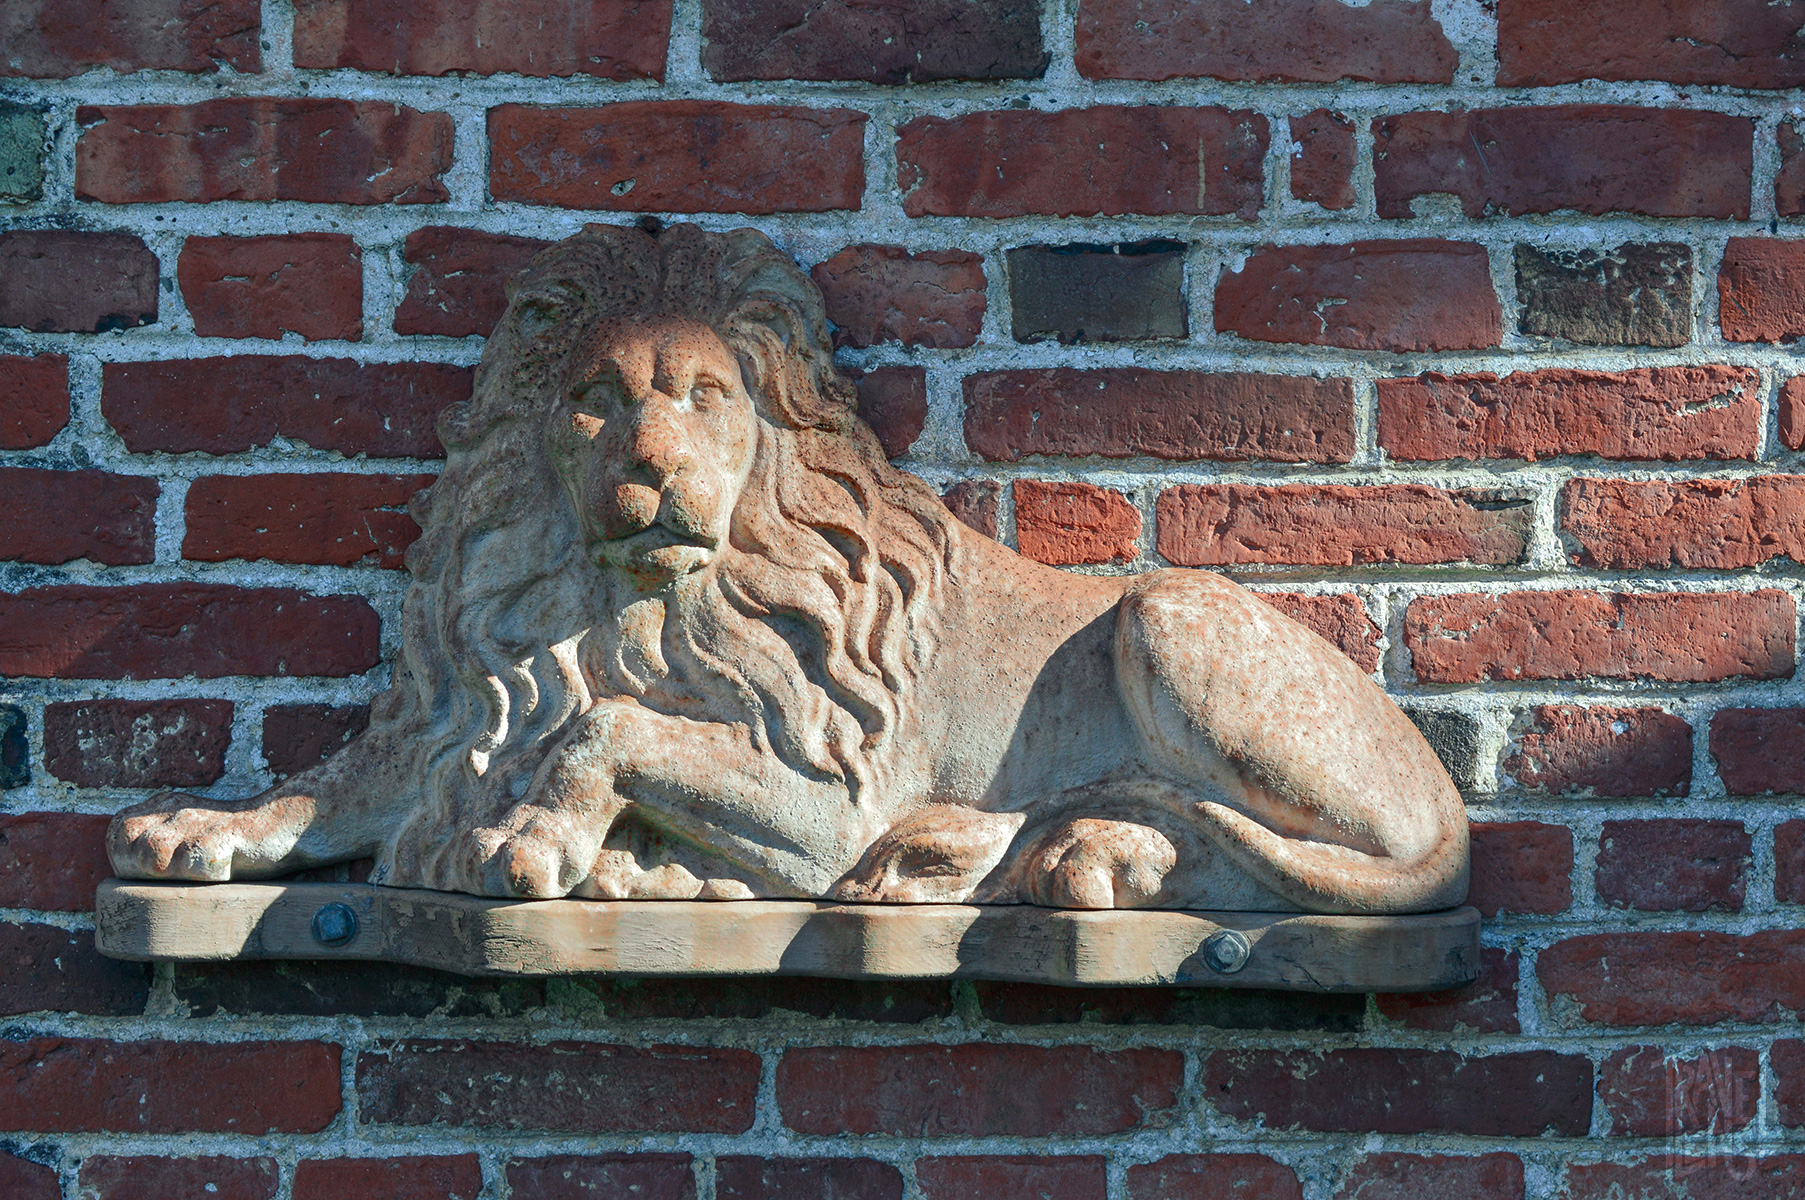 A lion on the brick of the Warner House in Portsmouth, NH